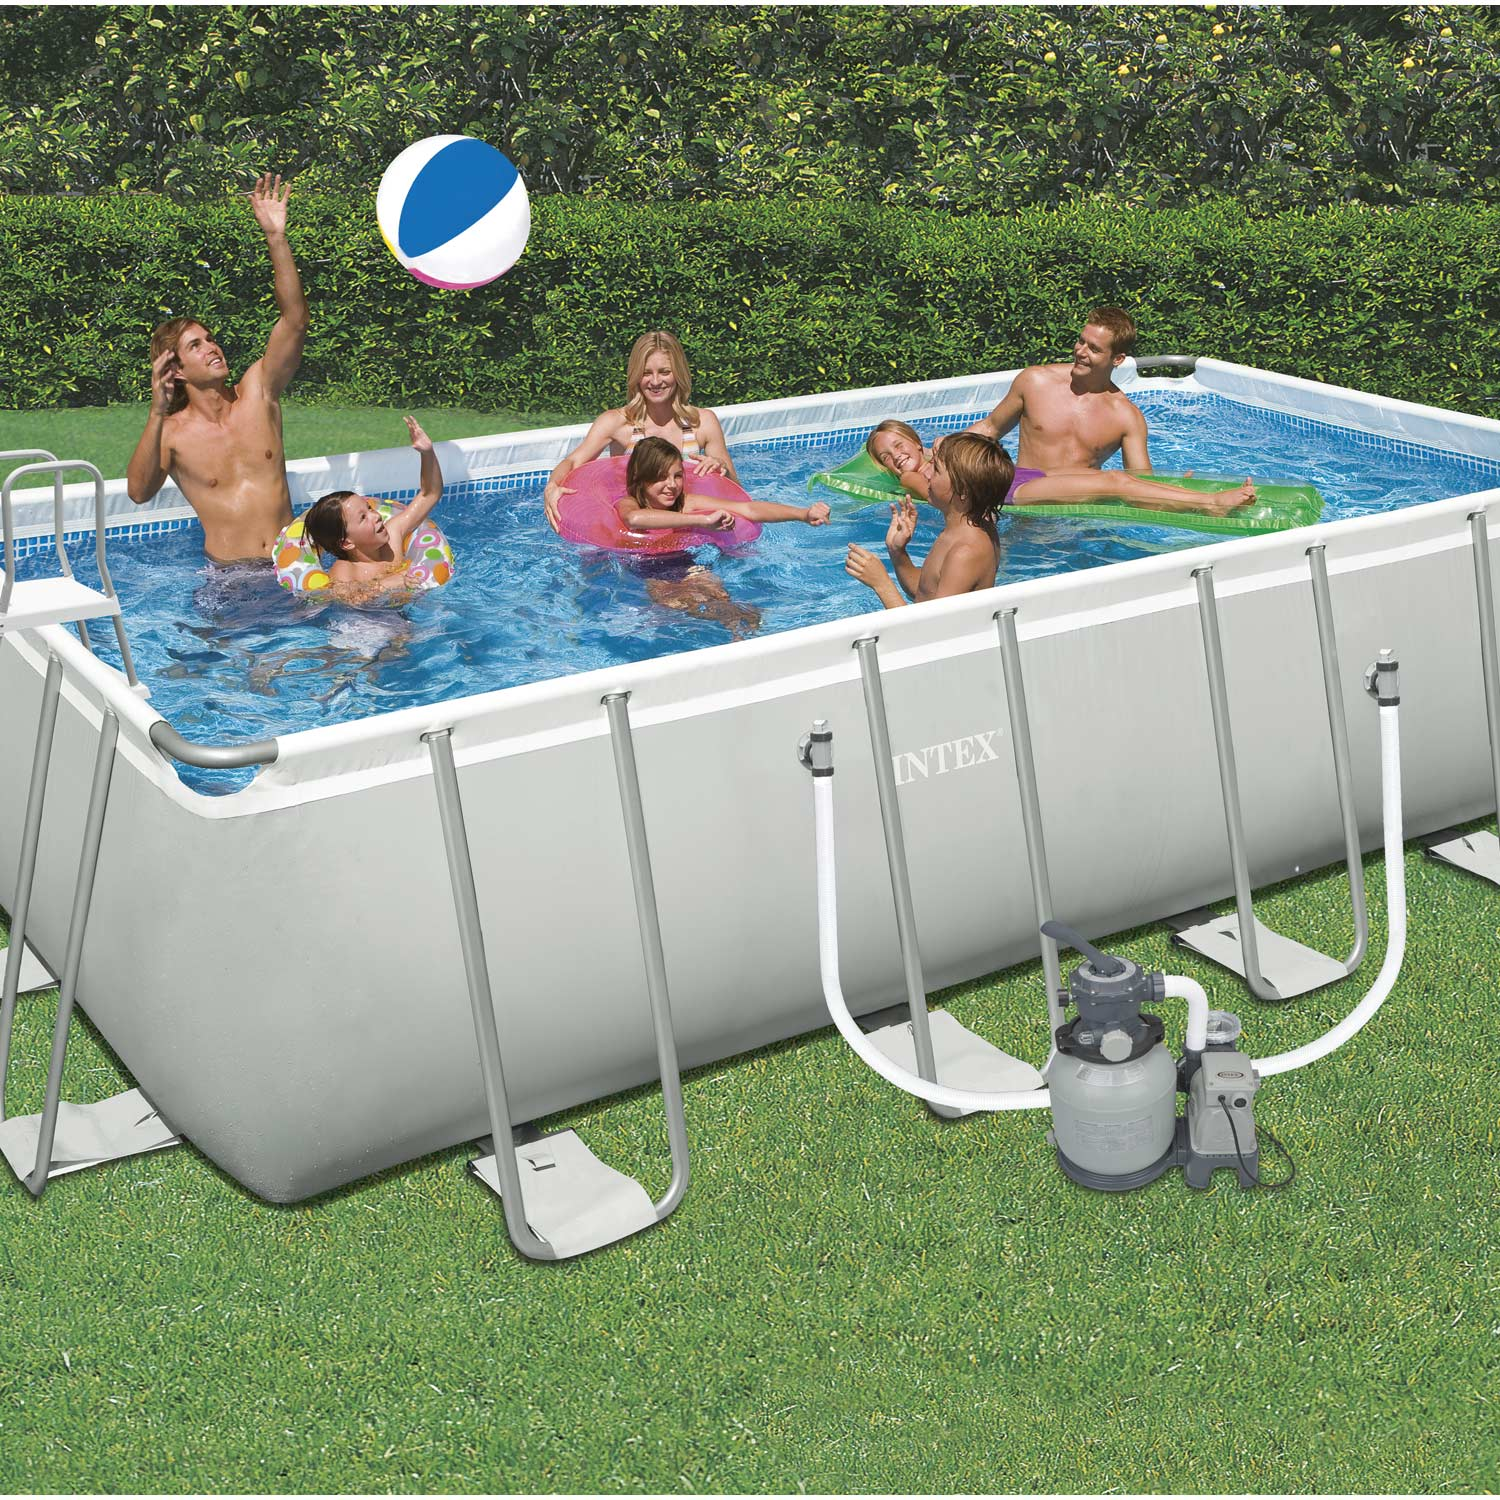 Piscine hors sol autoportante tubulaire intex l x l for Piscine intex hors sol